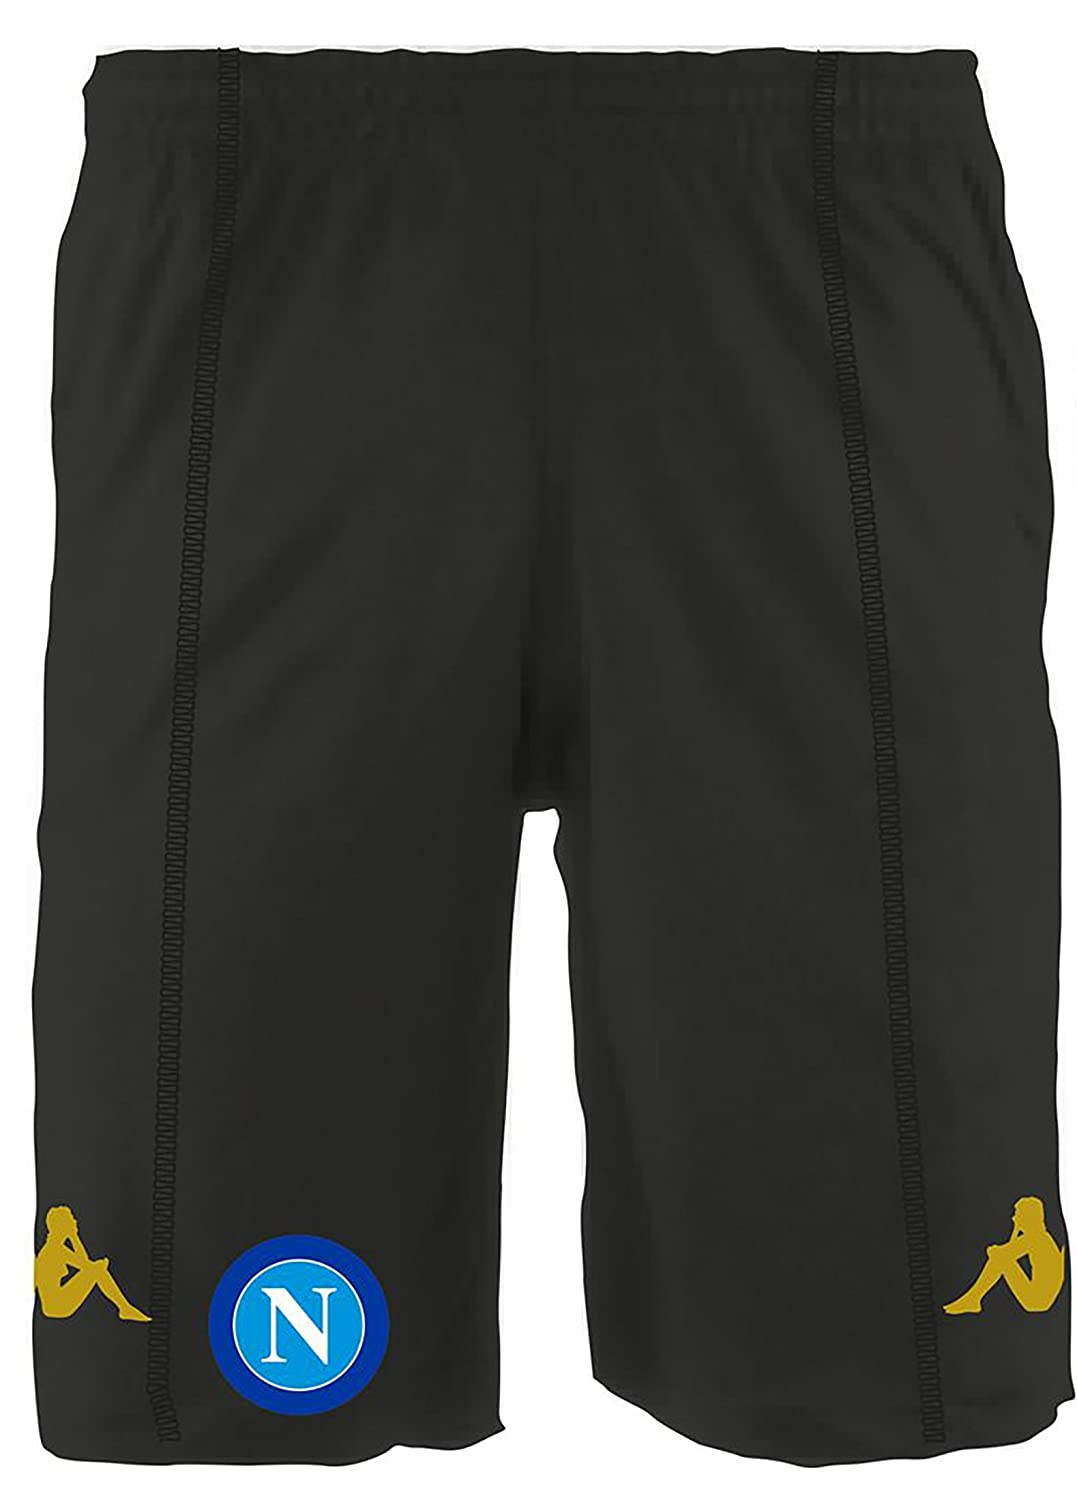 Collection officielle 2016//17 Taille adulte homme Kappa Short training NAPLES